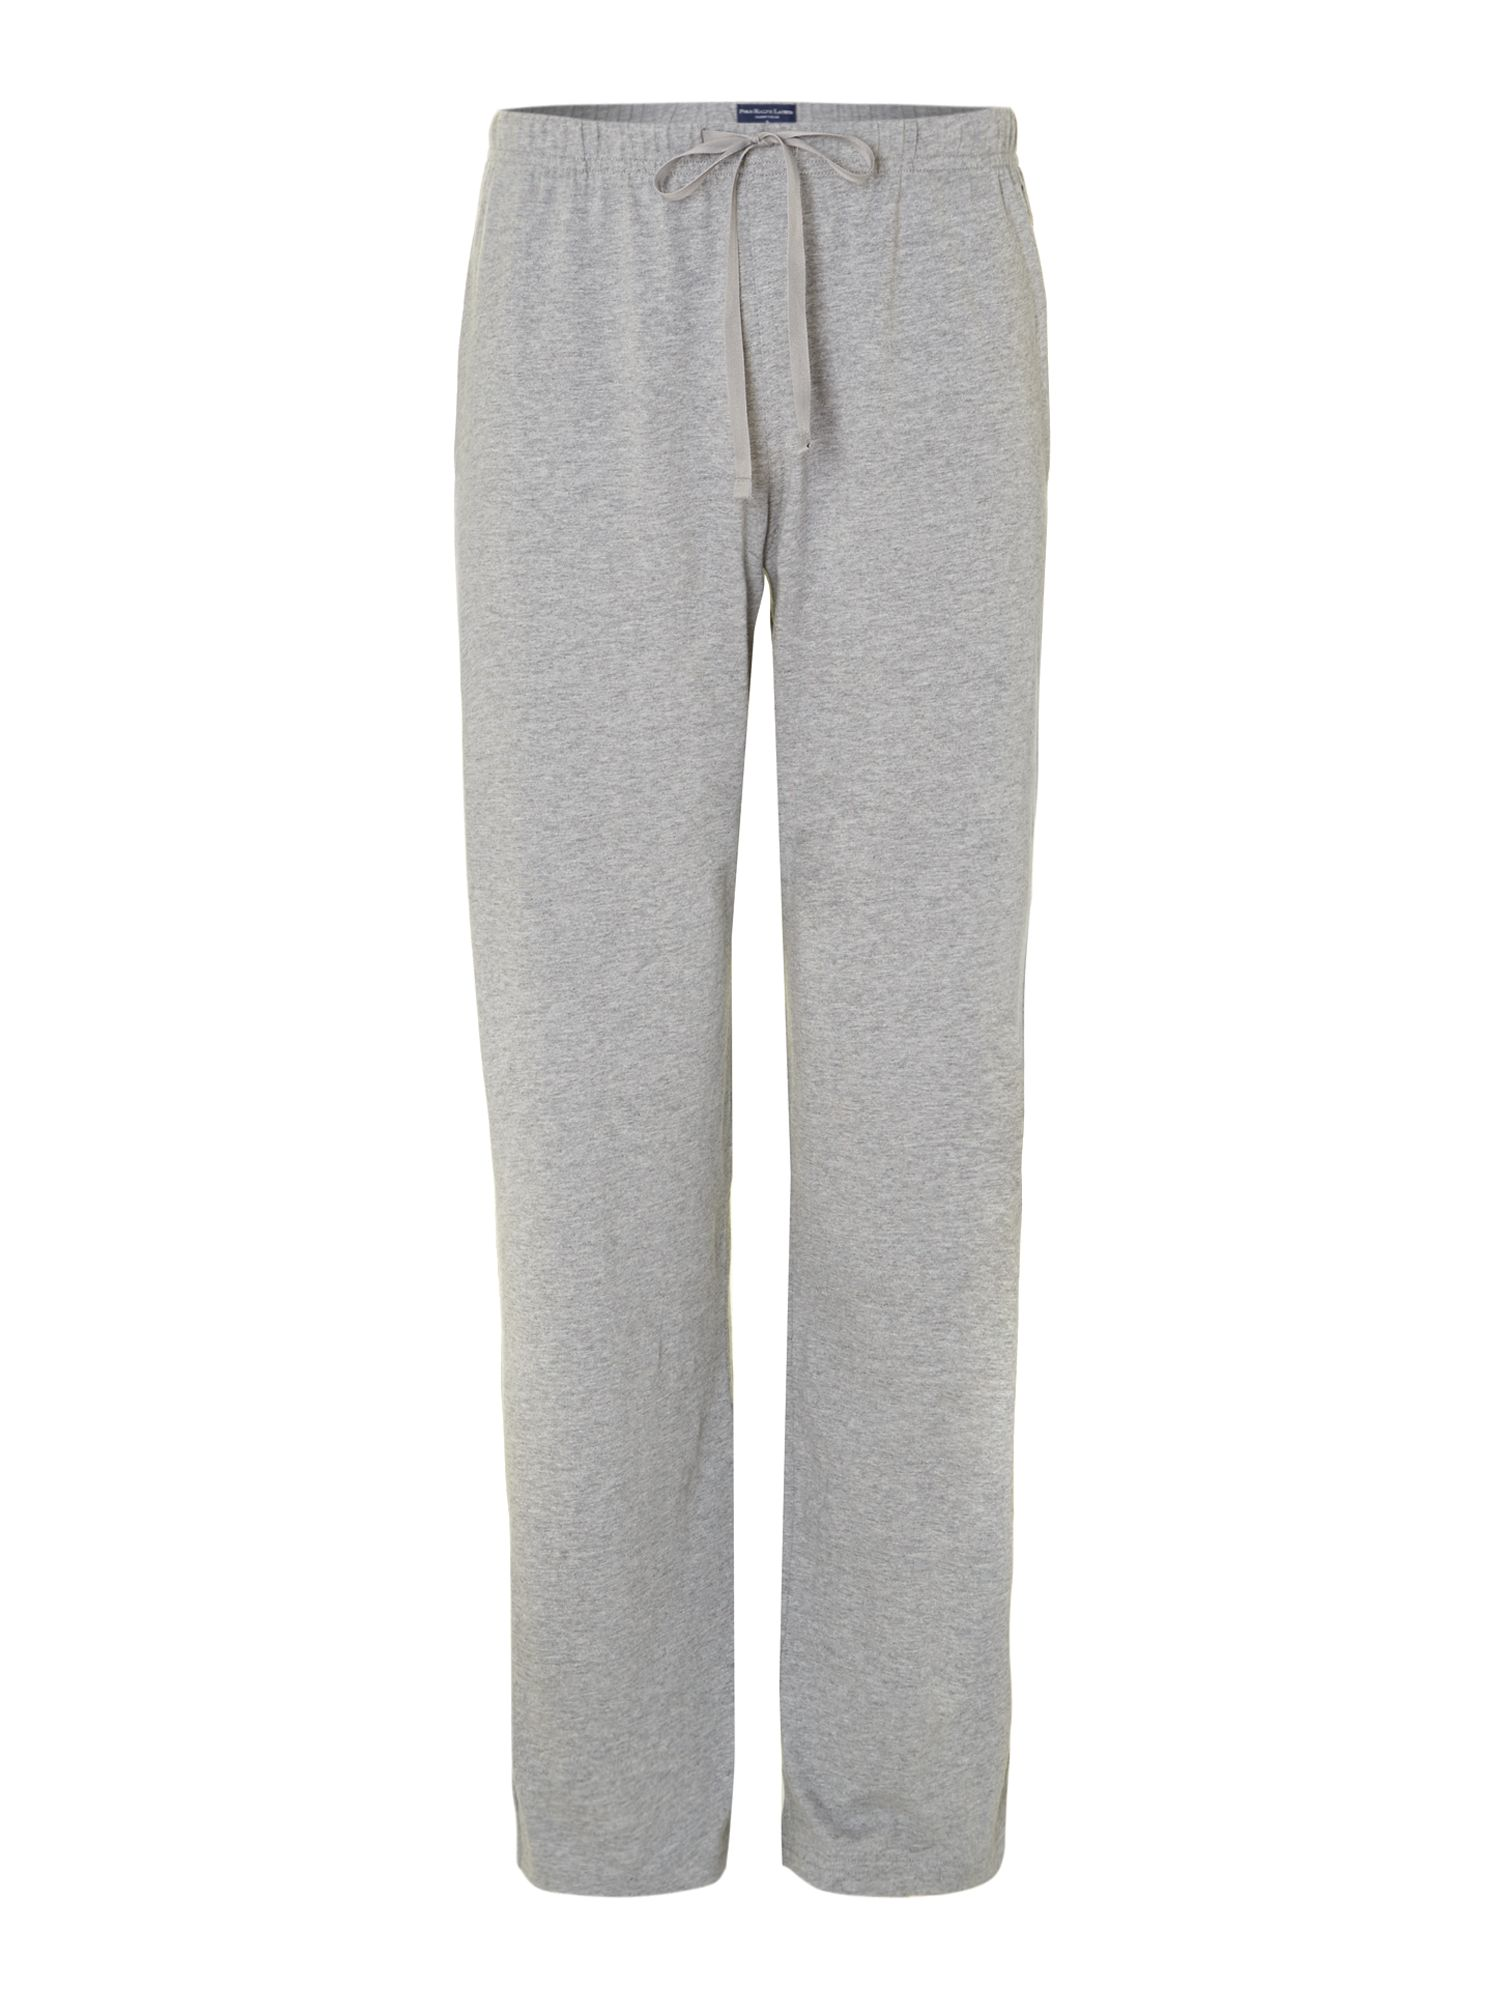 Nightwear trousers